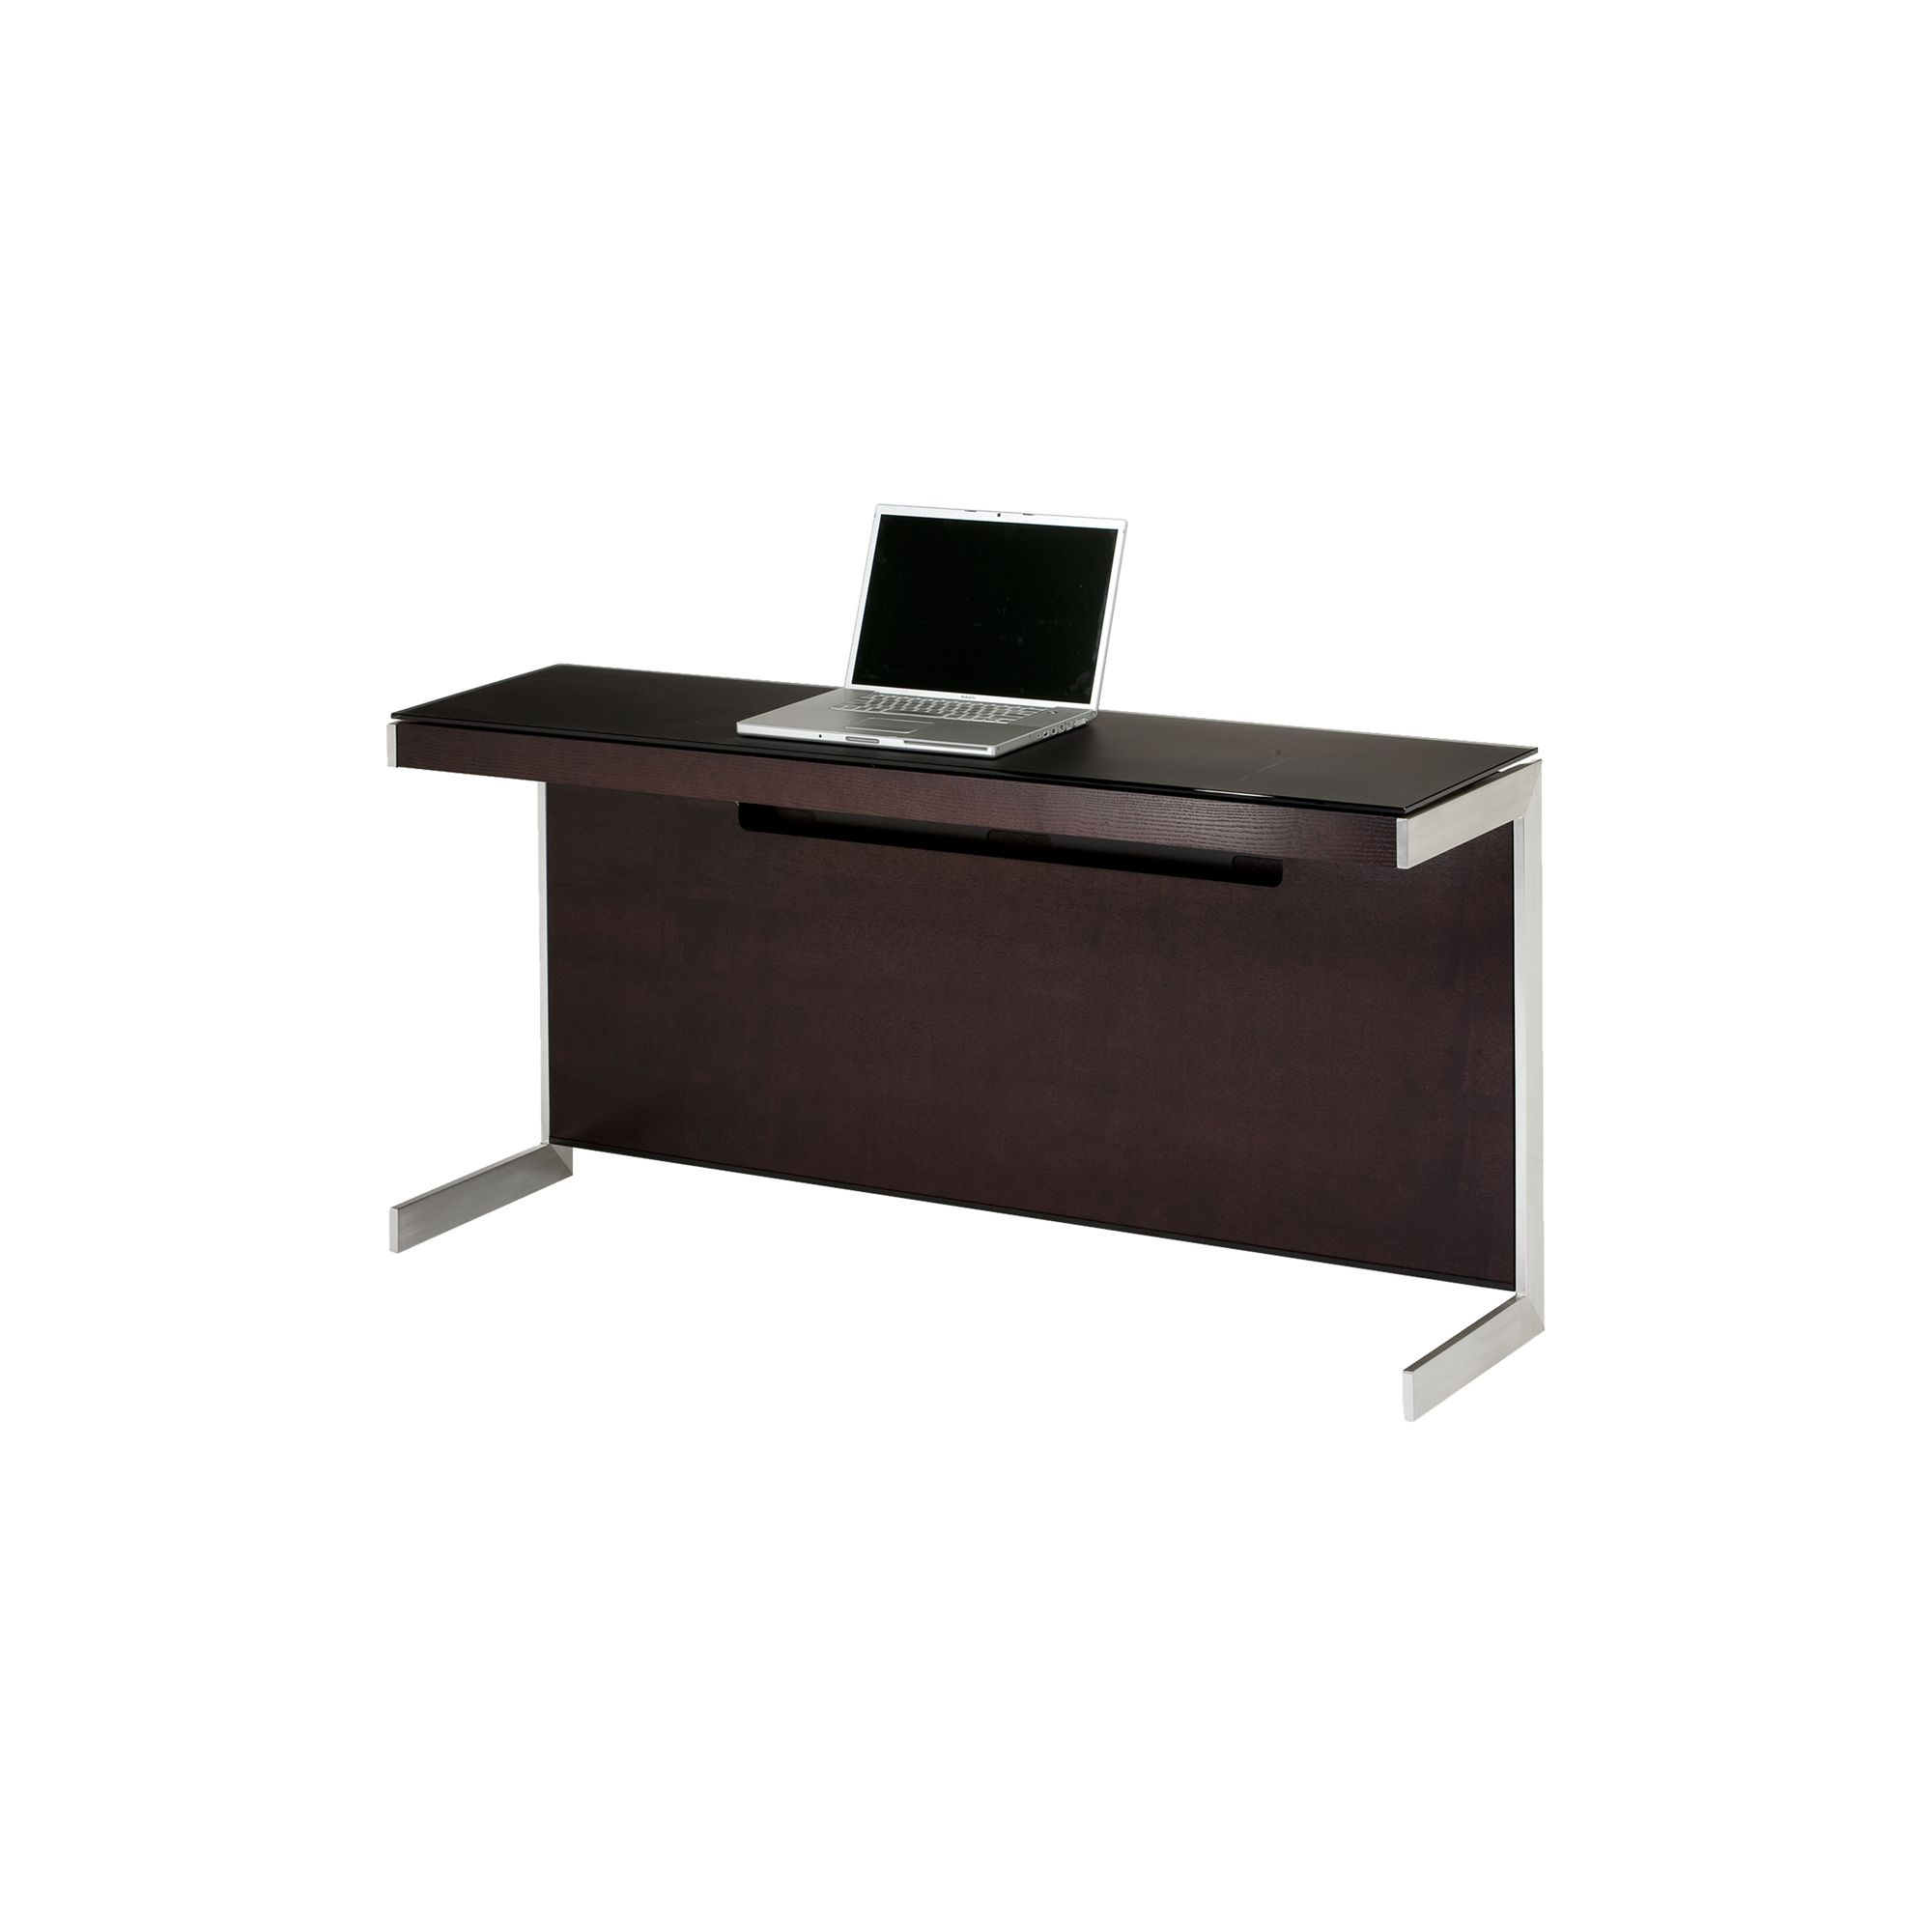 Sequel 6002 Desk in Espresso Stained oak with Glass Top at Tesco Direct